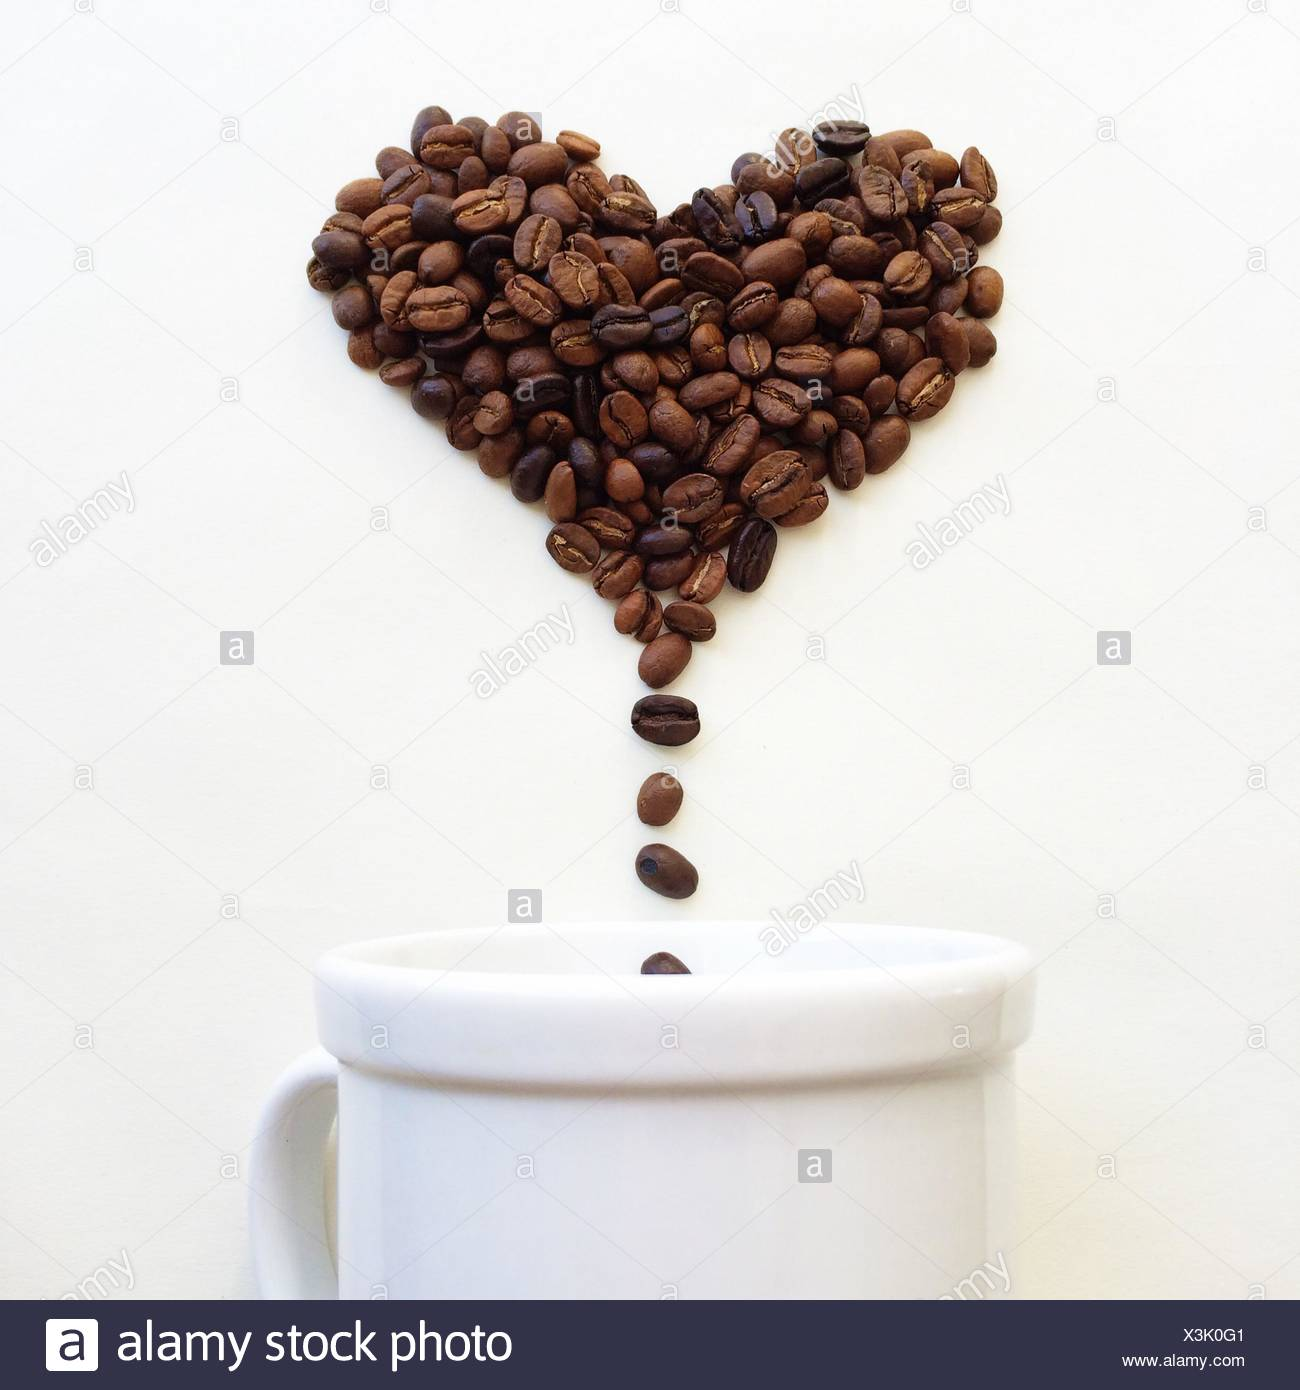 Coffee beans in shape of heart dropping into a coffee cup - Stock Image